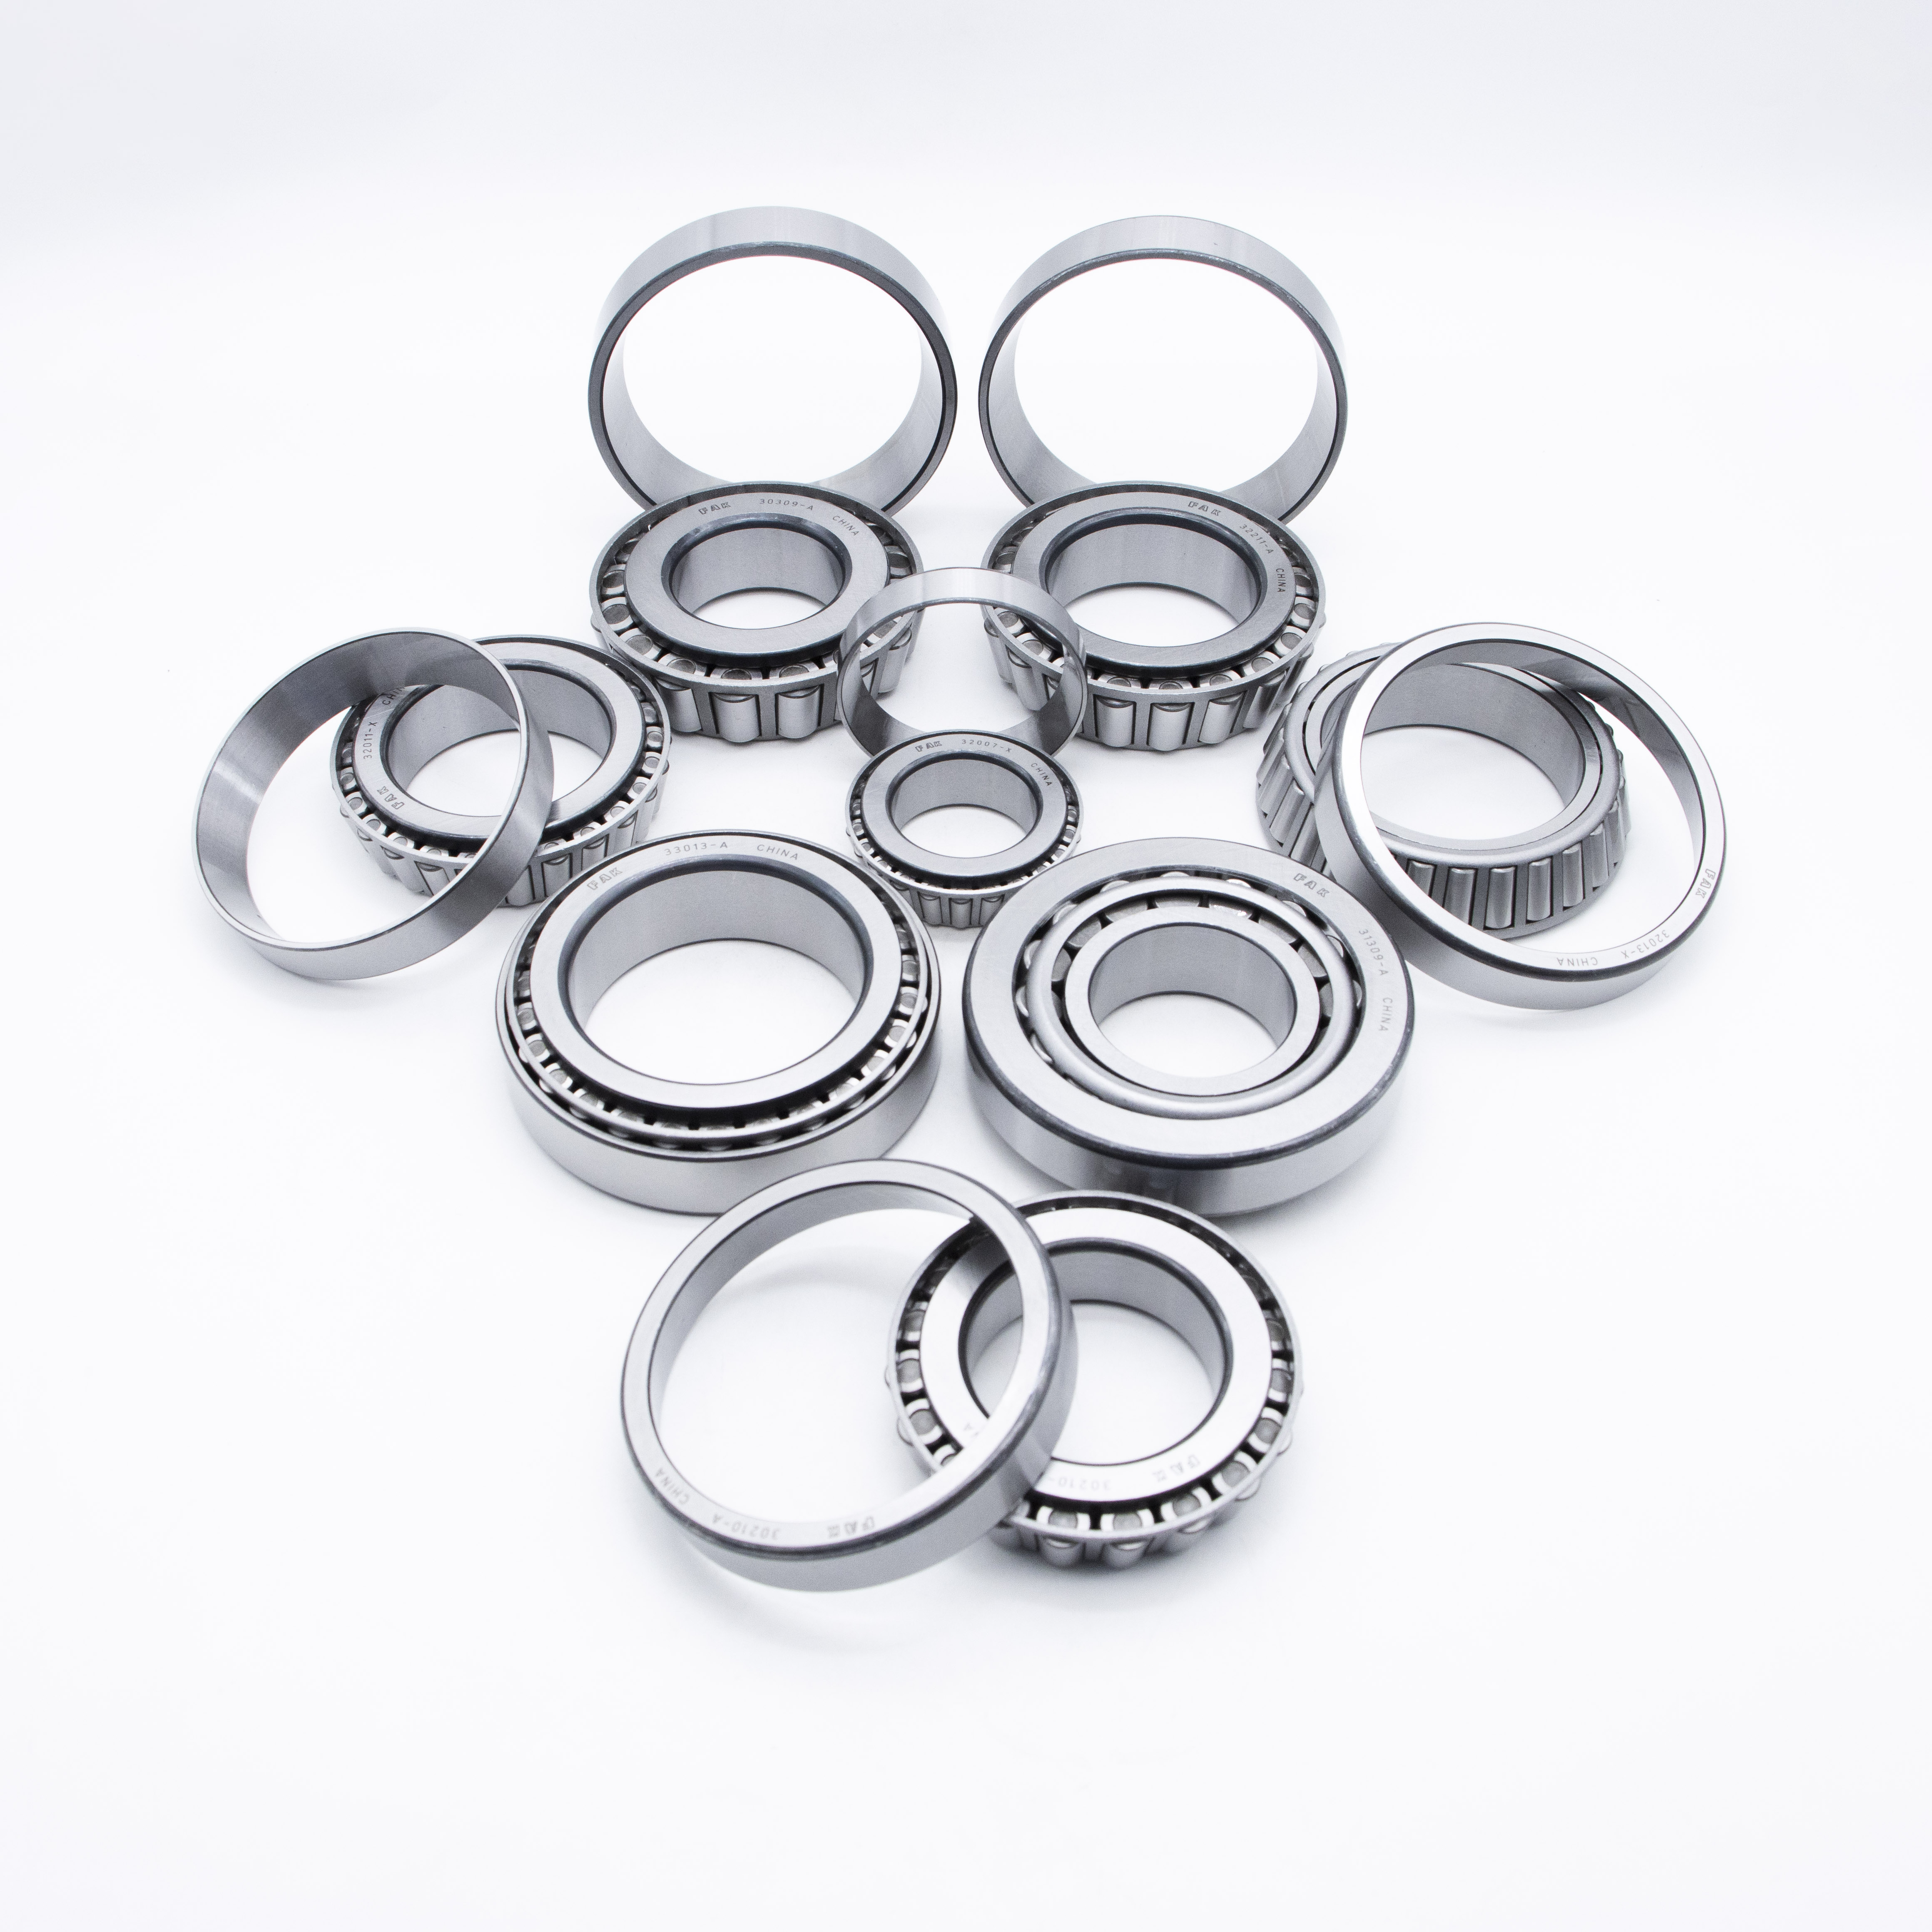 Motorbike FAK Self-Aligning Ball Bearing 129